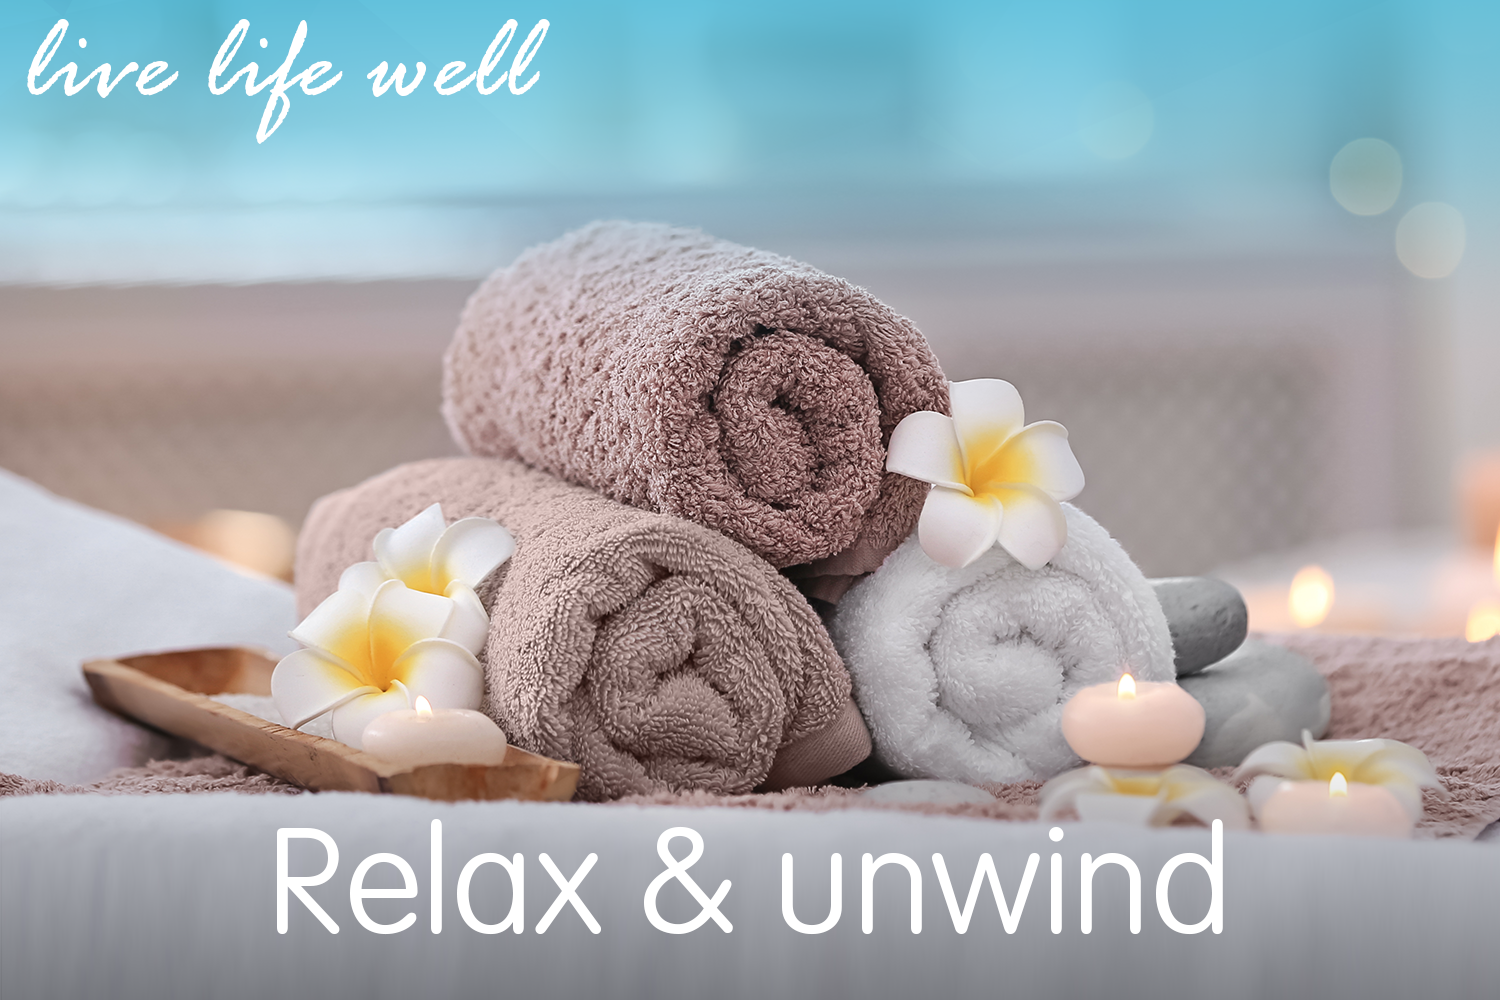 Discounts to help you relax & unwind